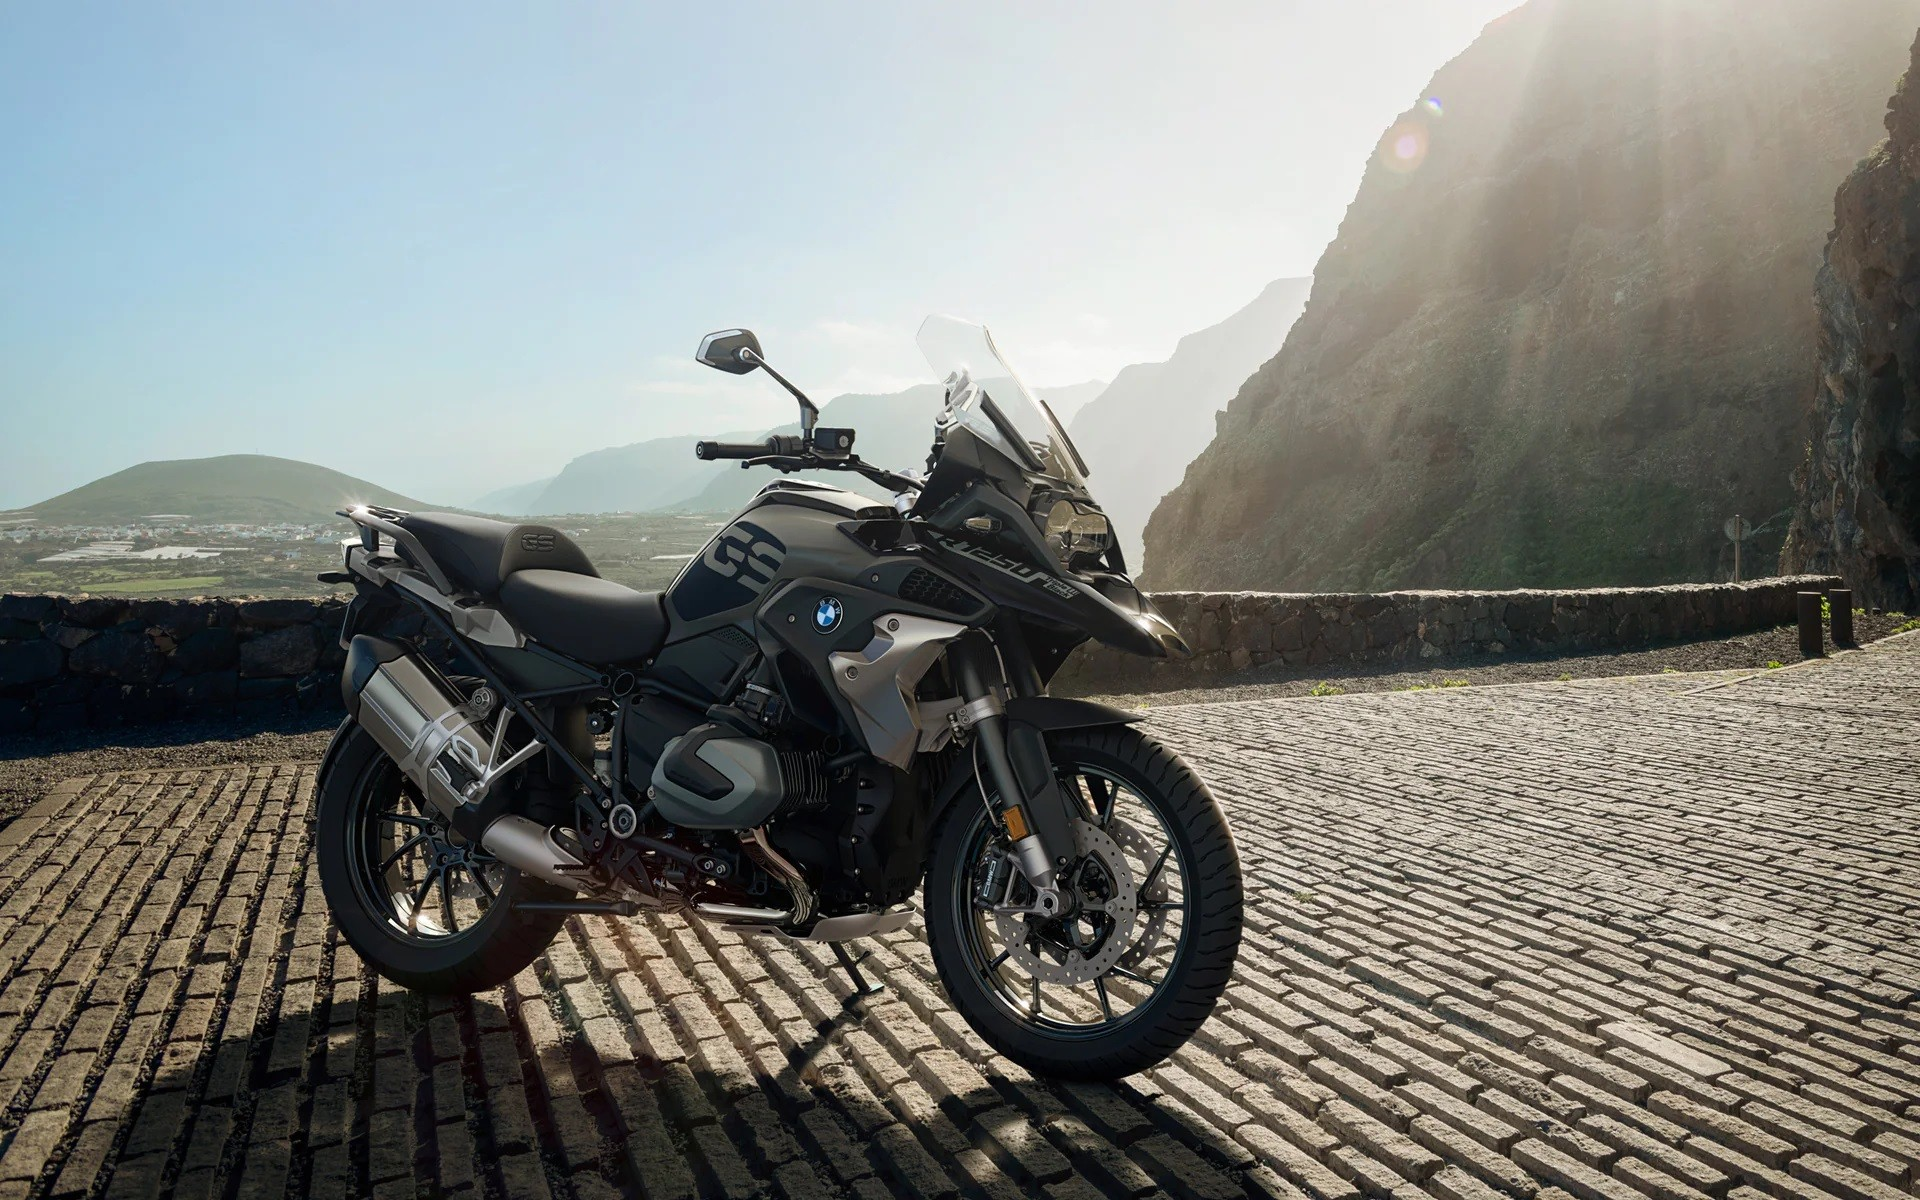 BMW R 1250 GS PRICE UNCHANGED BUT WITH UPDATED VERSION